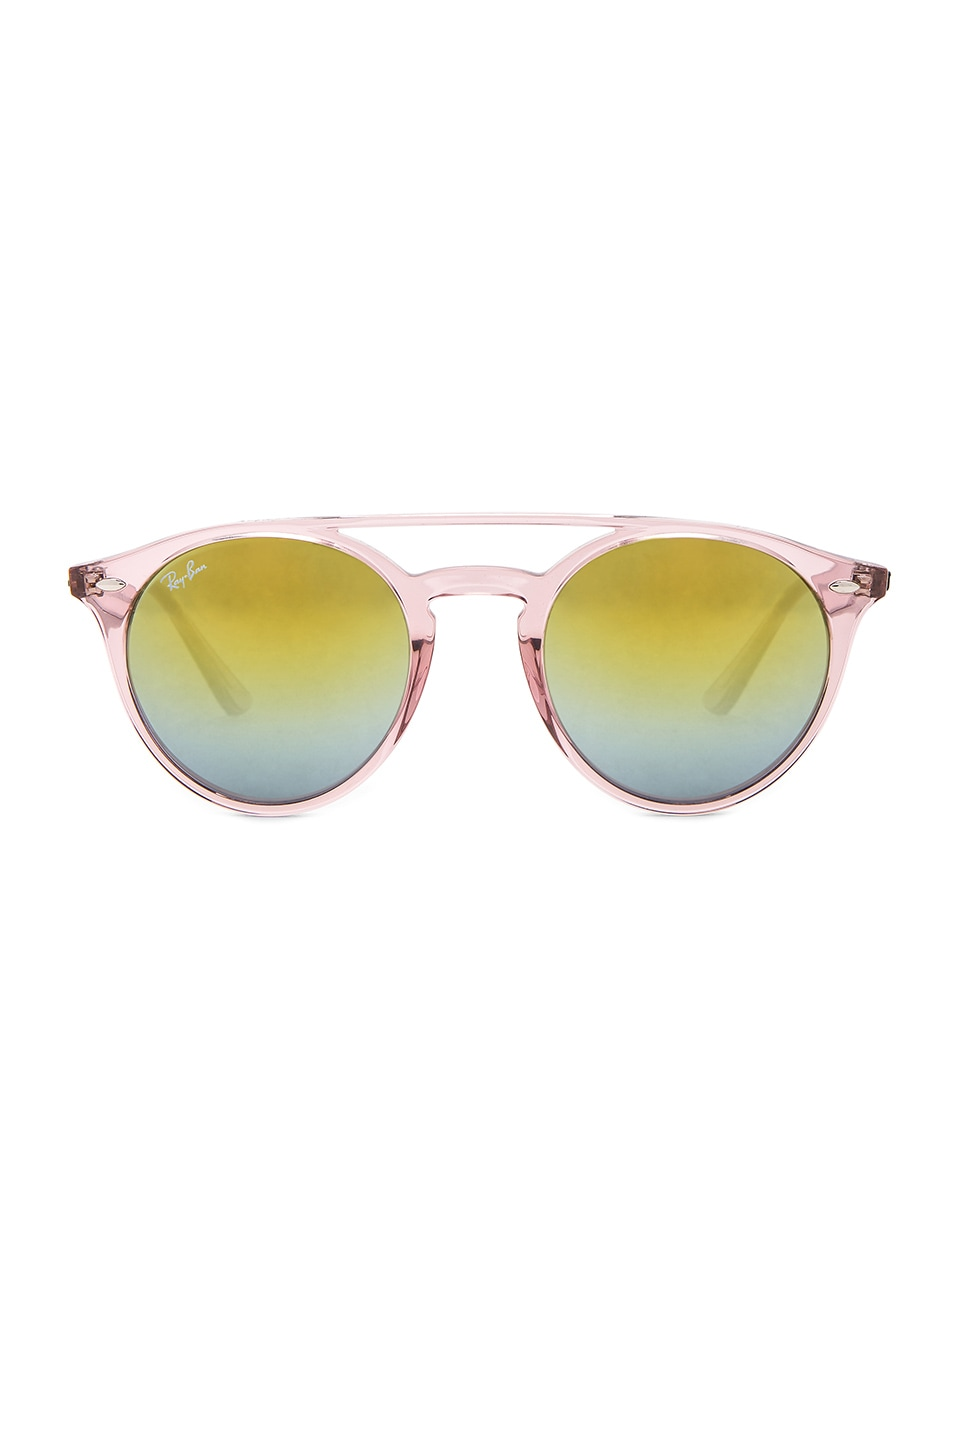 Ray-Ban RB4279 in Pink & Green Gradient Mirror